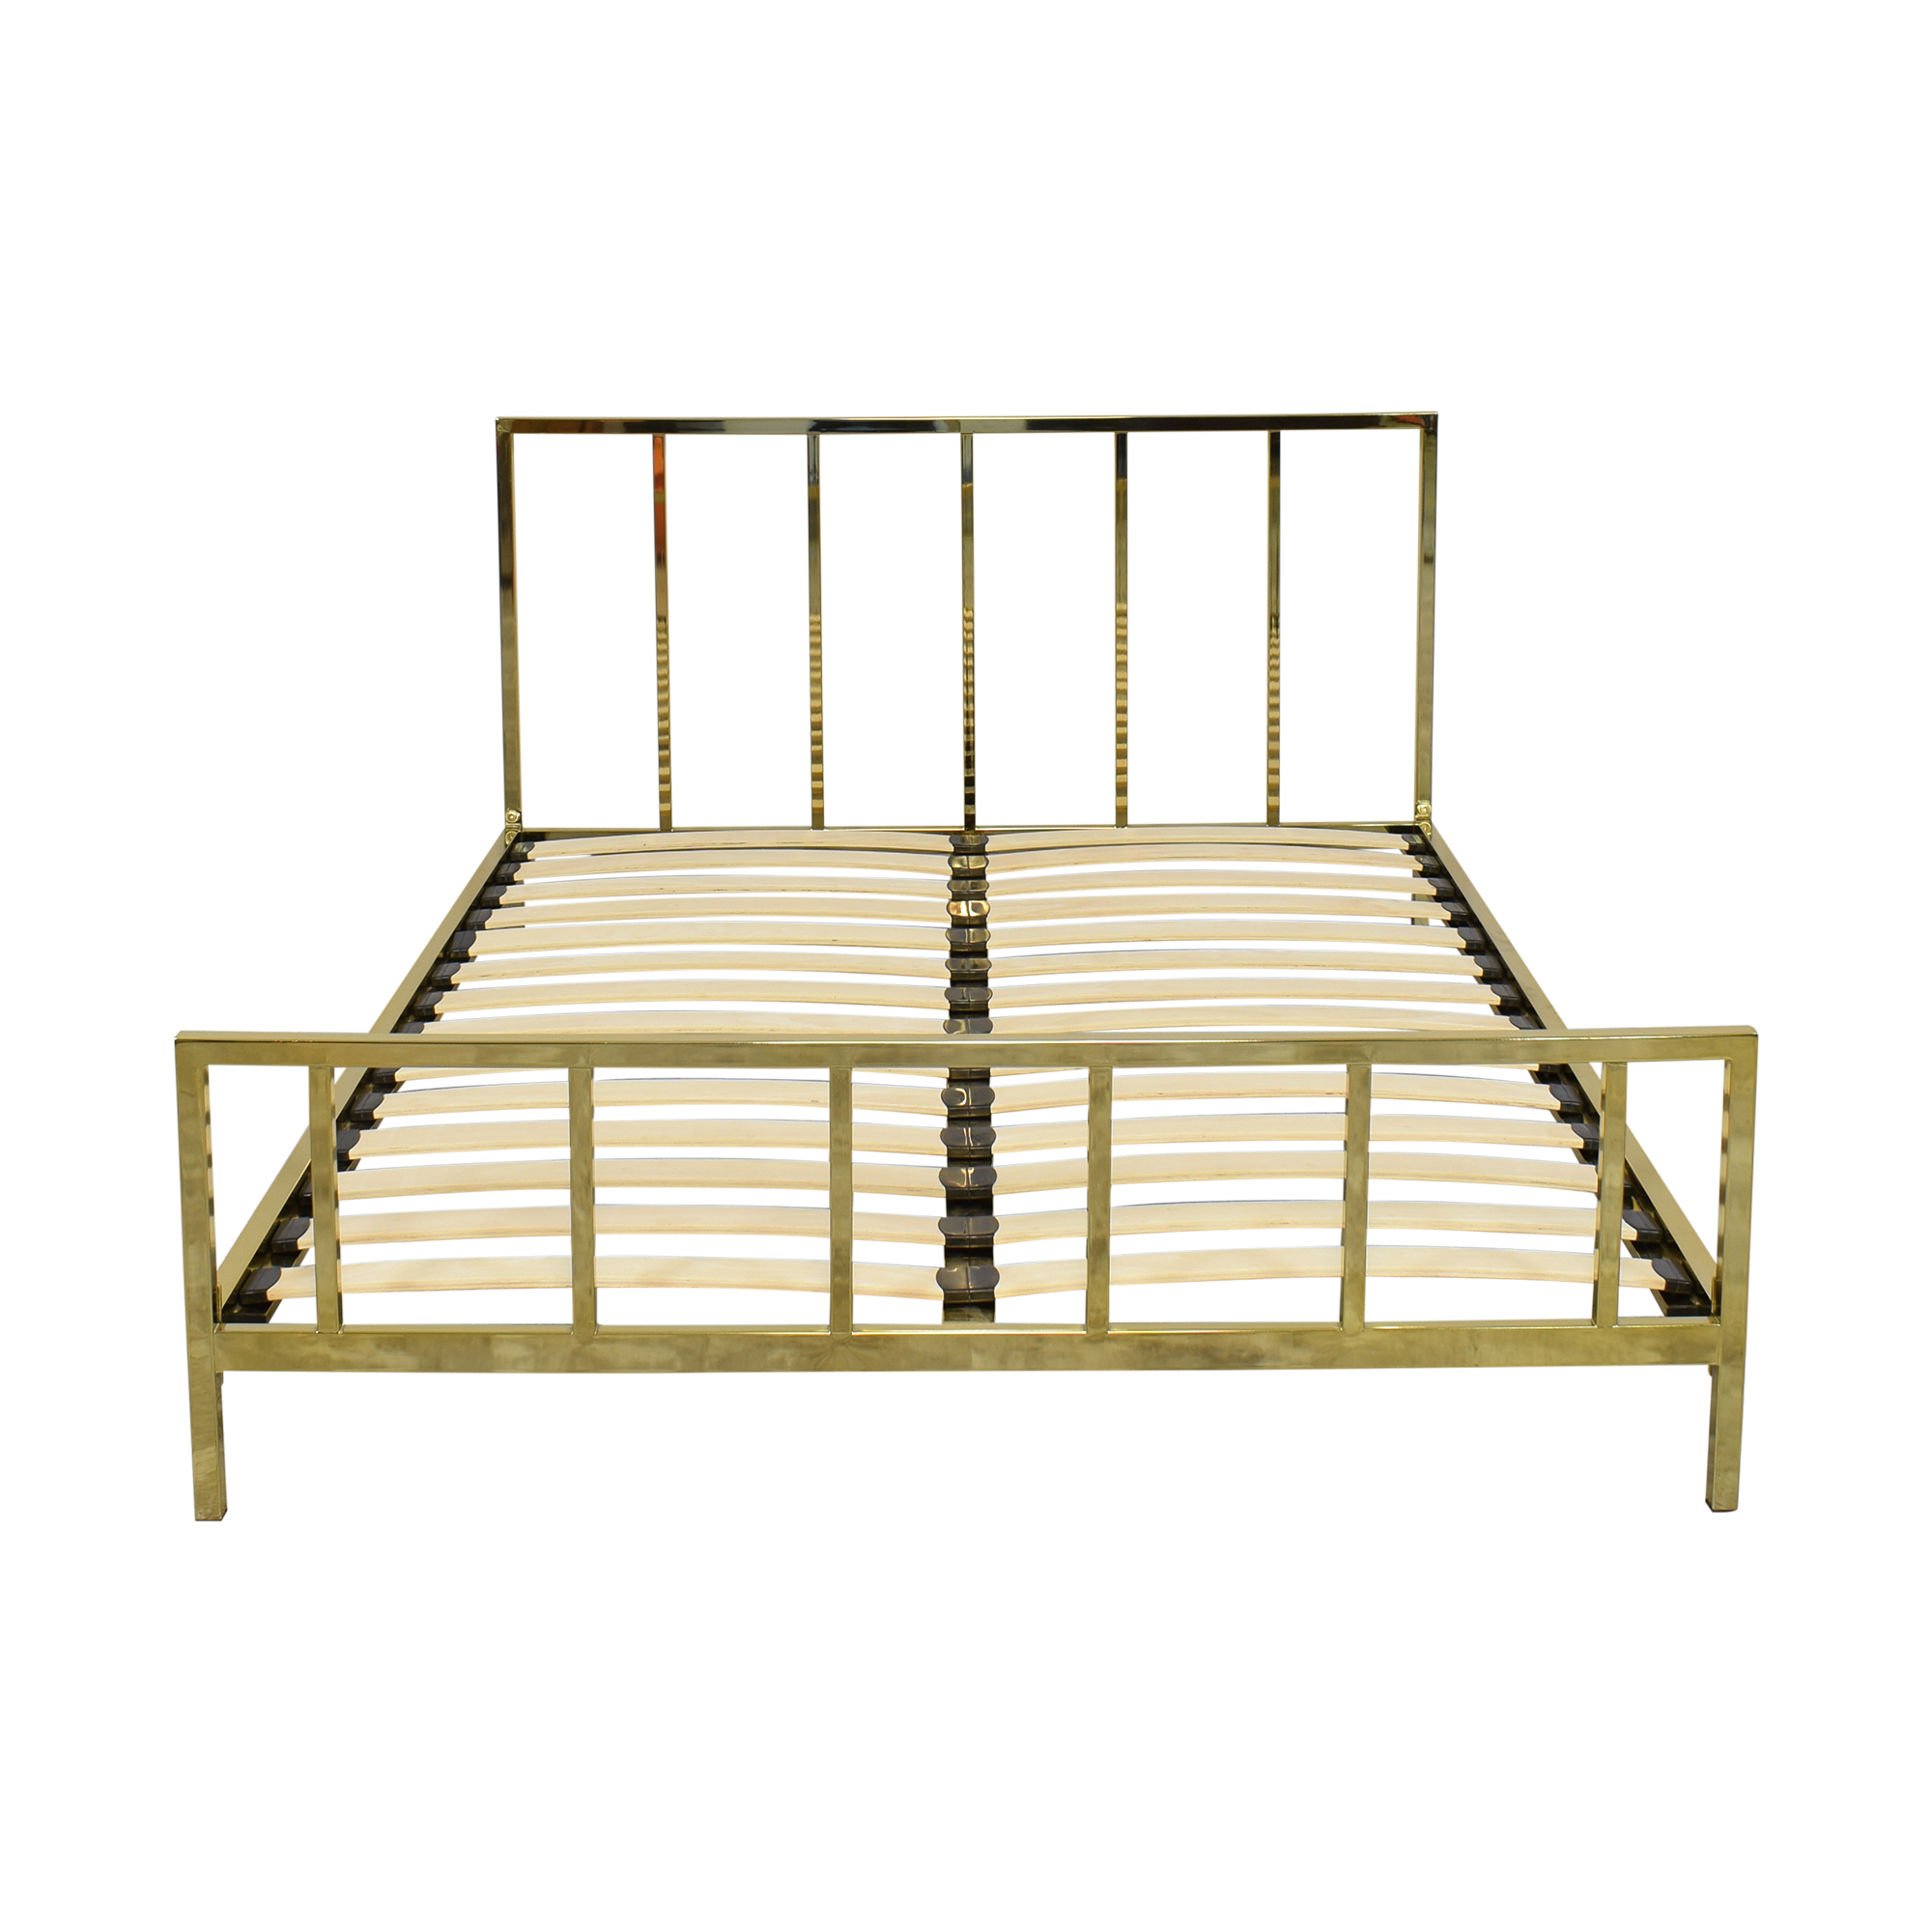 CB2 CB2 Alchemy Bronze Full Bed on sale